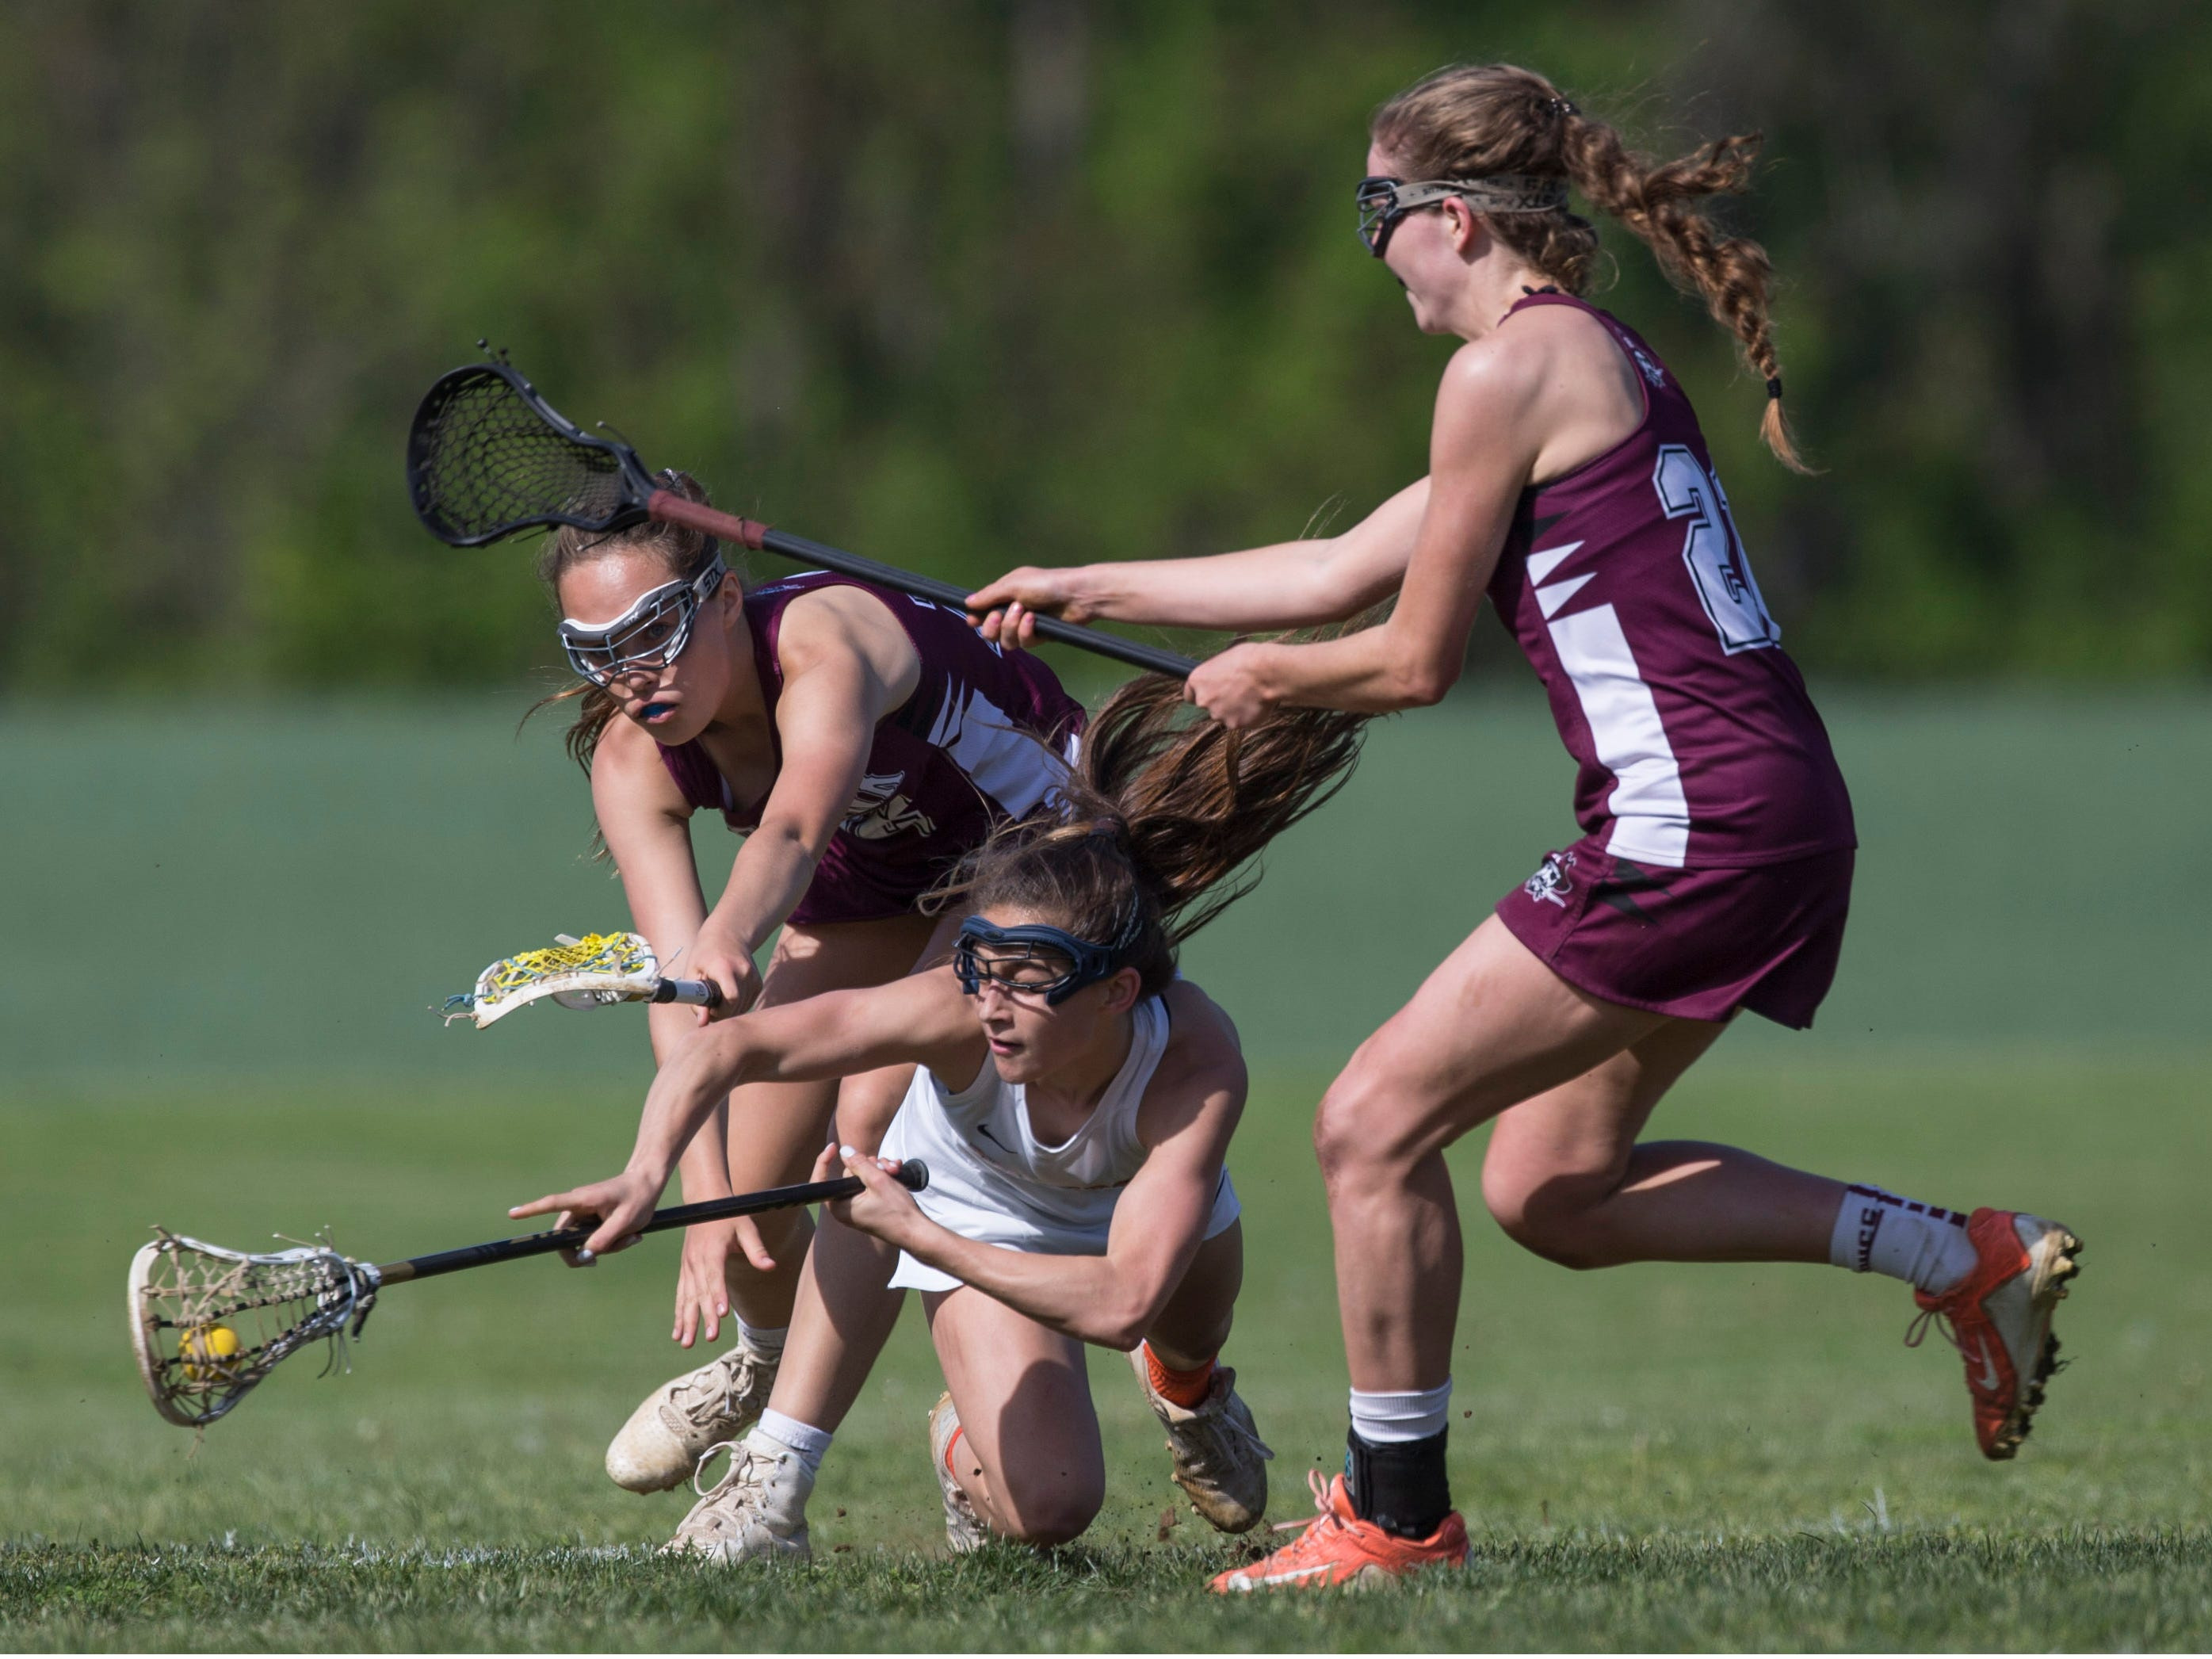 Trinity Hall's Dora Haven is knocked to the ground. Trinity Hall vs Red Bank Regional lacrosse. Colts Neck, NJTuesday, May 7, 2019